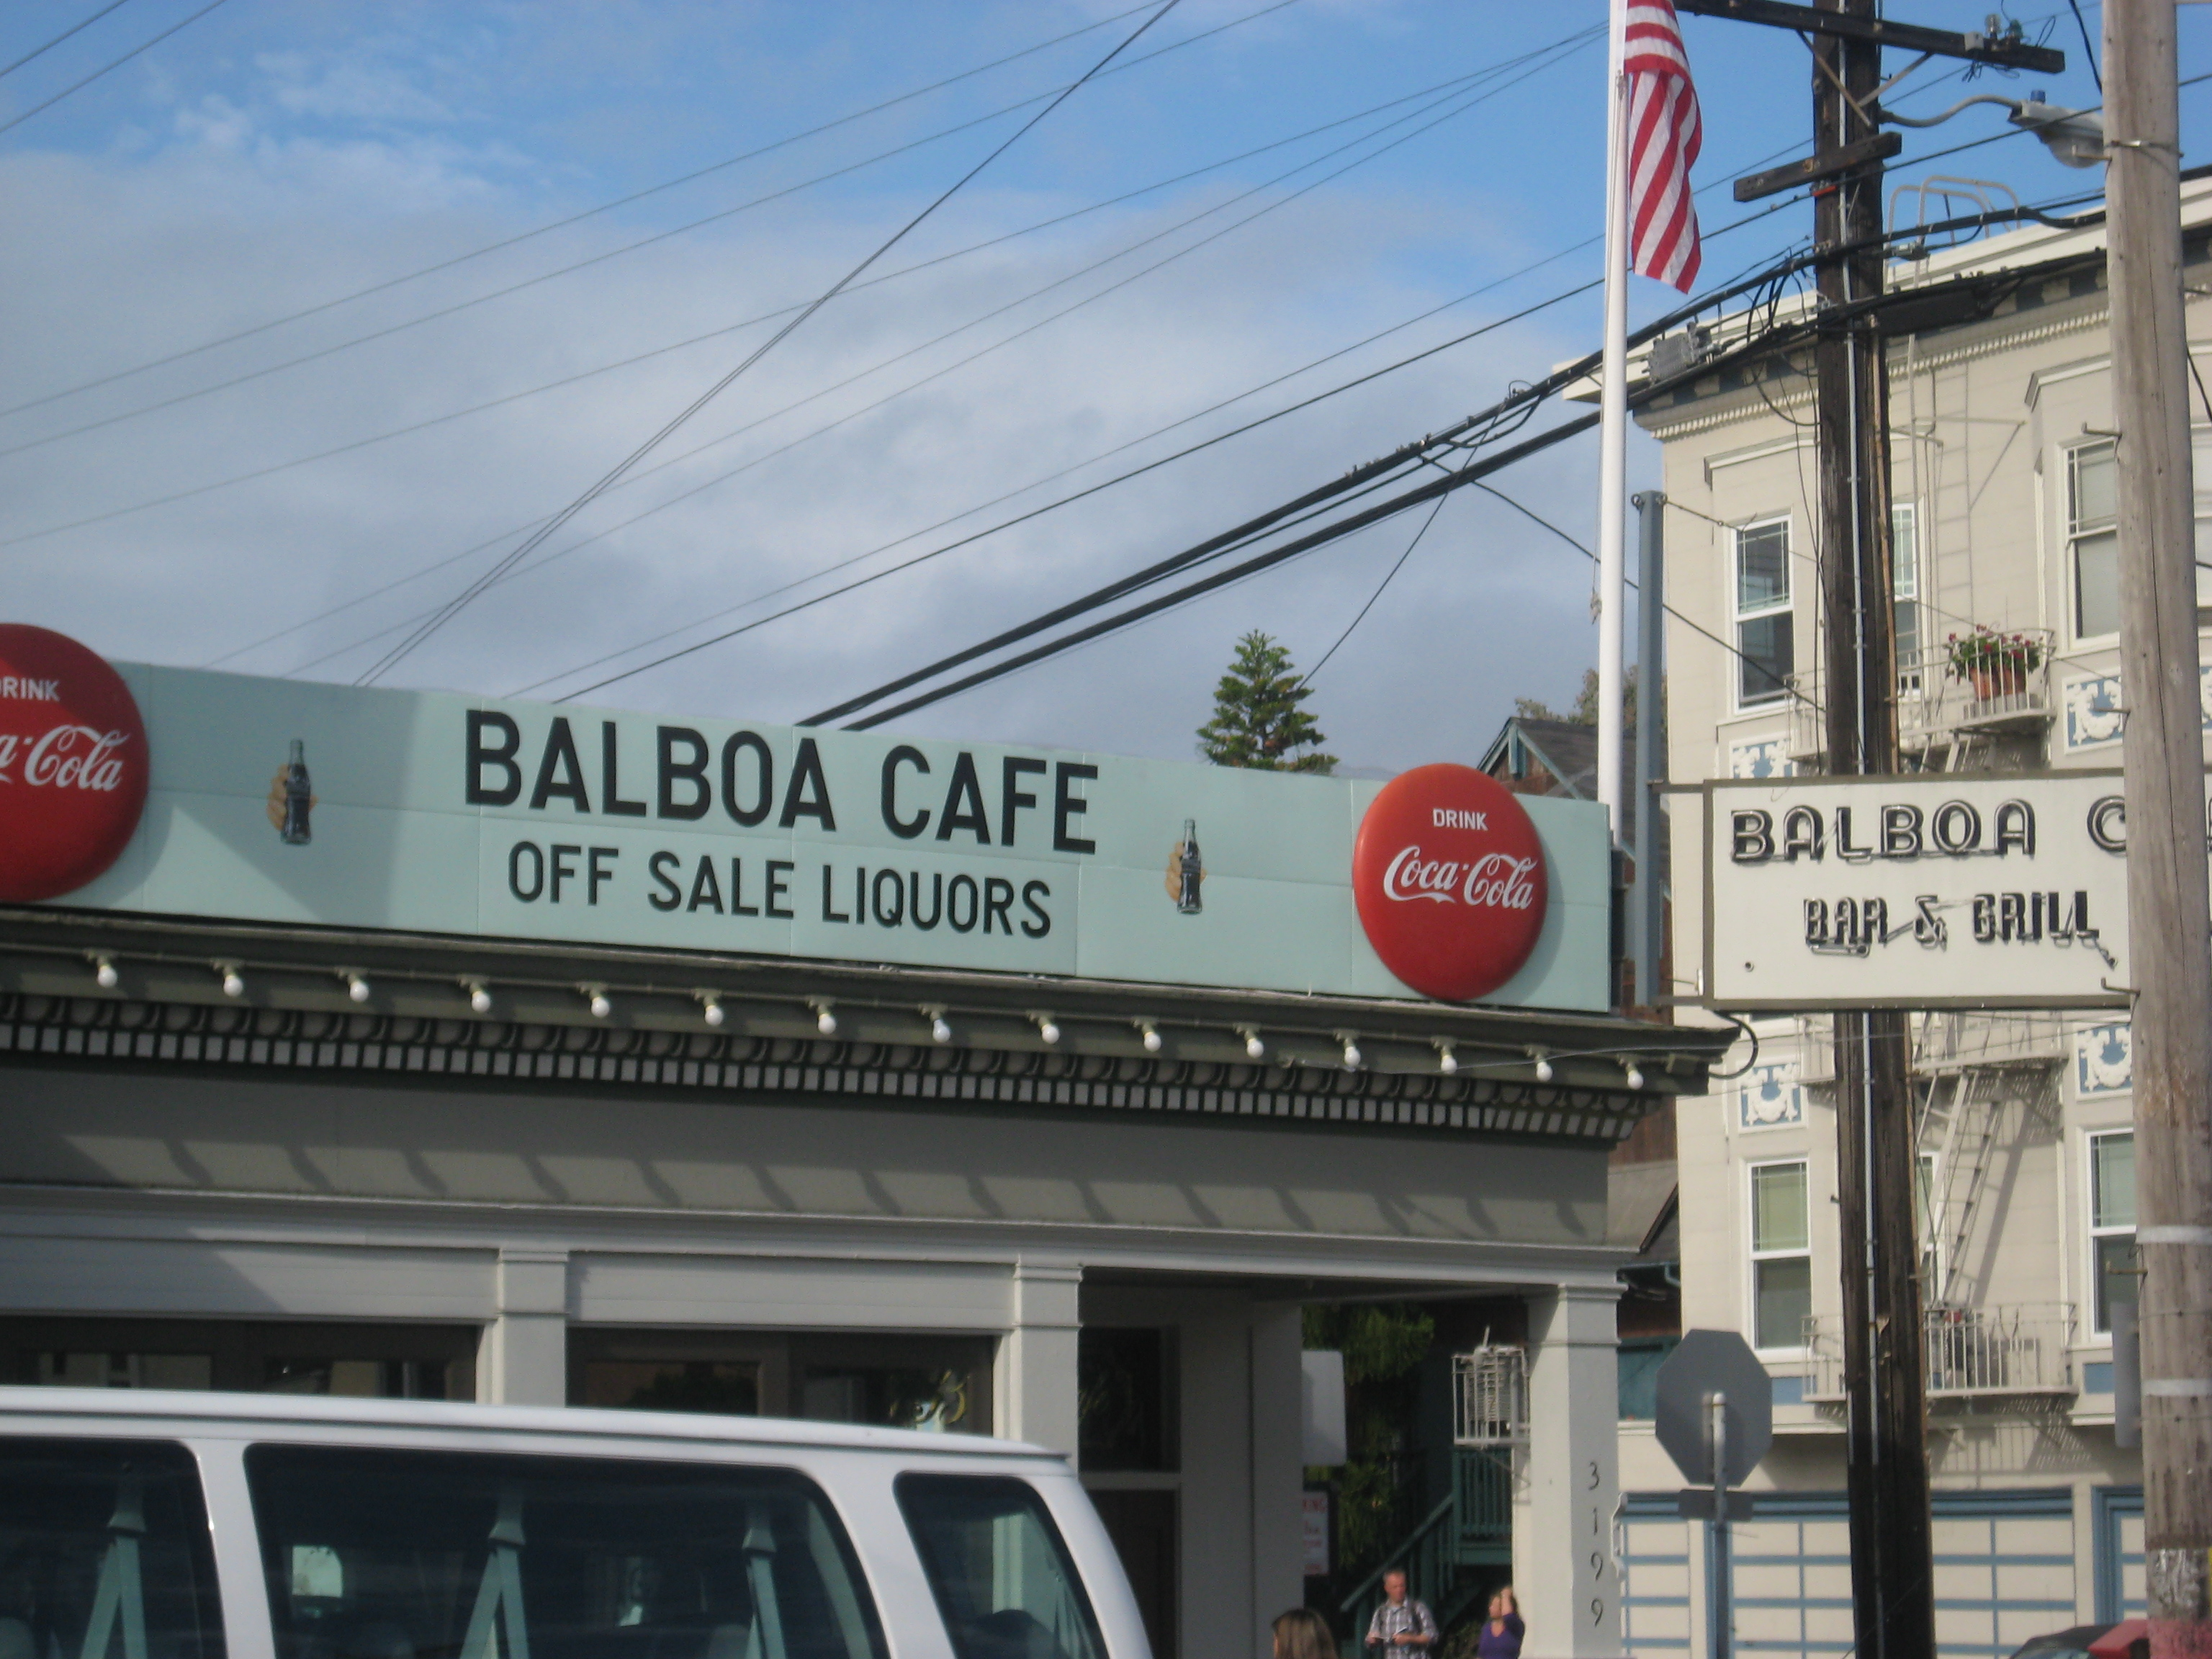 San Francisco's Balboa Cafe.